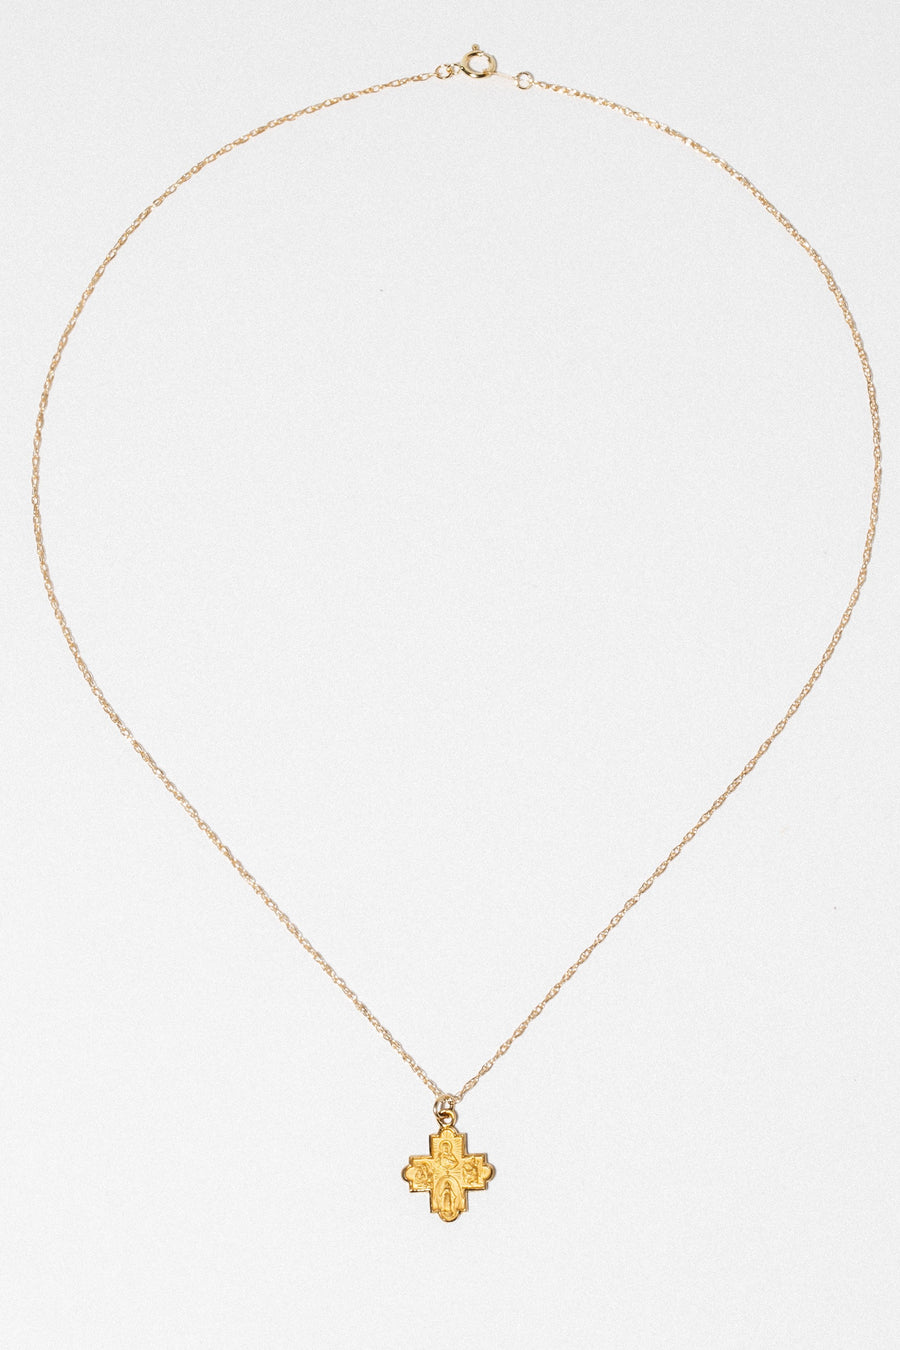 Stuller Jewelry Gold / 16 Inches Raphael Necklace